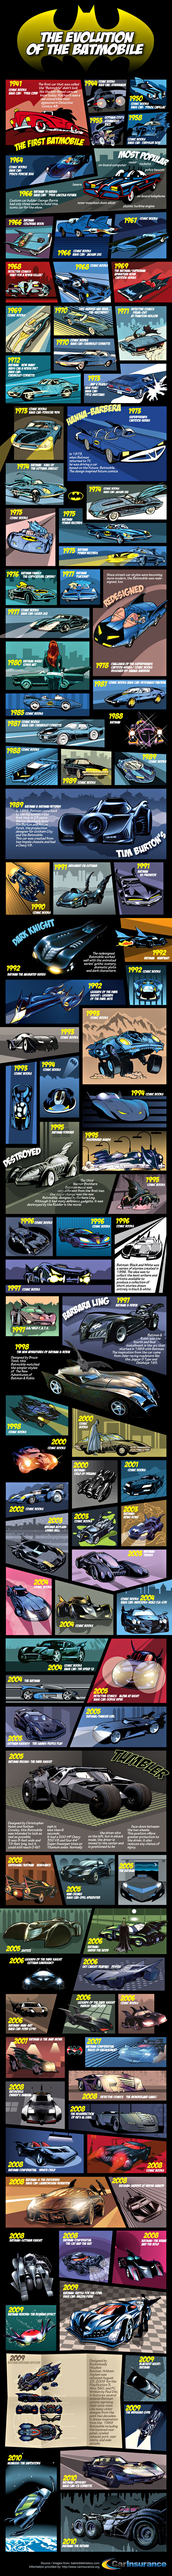 evolution-batmobile-jpg1